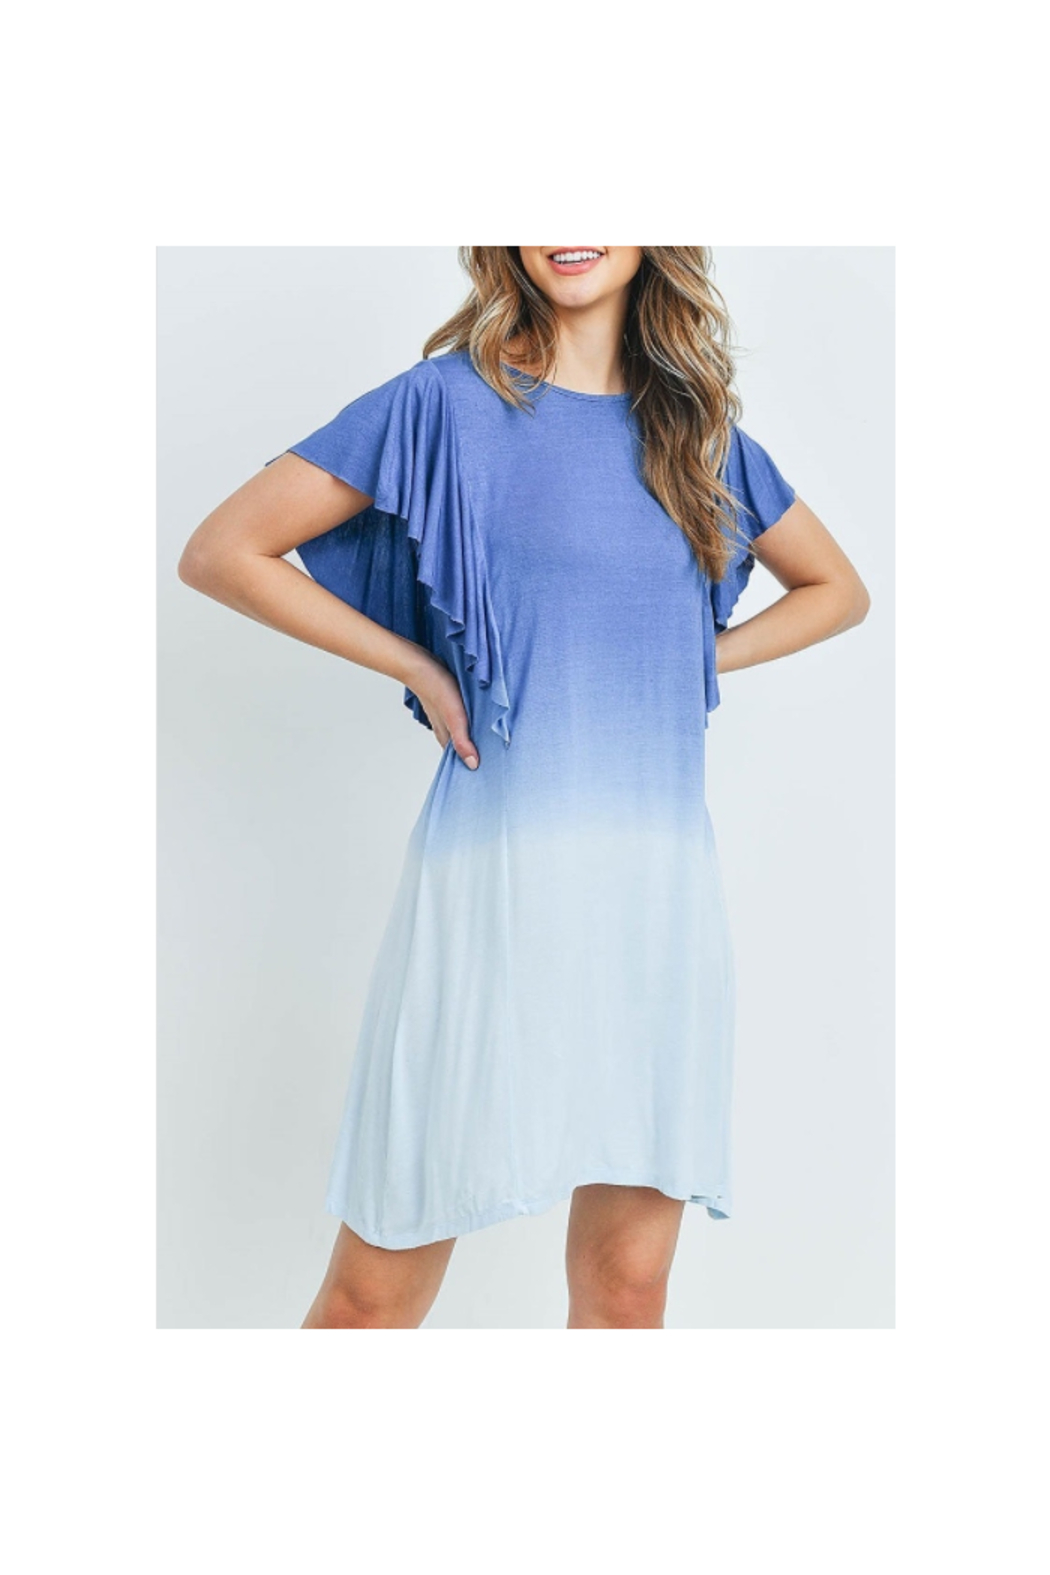 13 Factory Ruffle Detail Blue Ombre Tunic Dress - Front Full Image